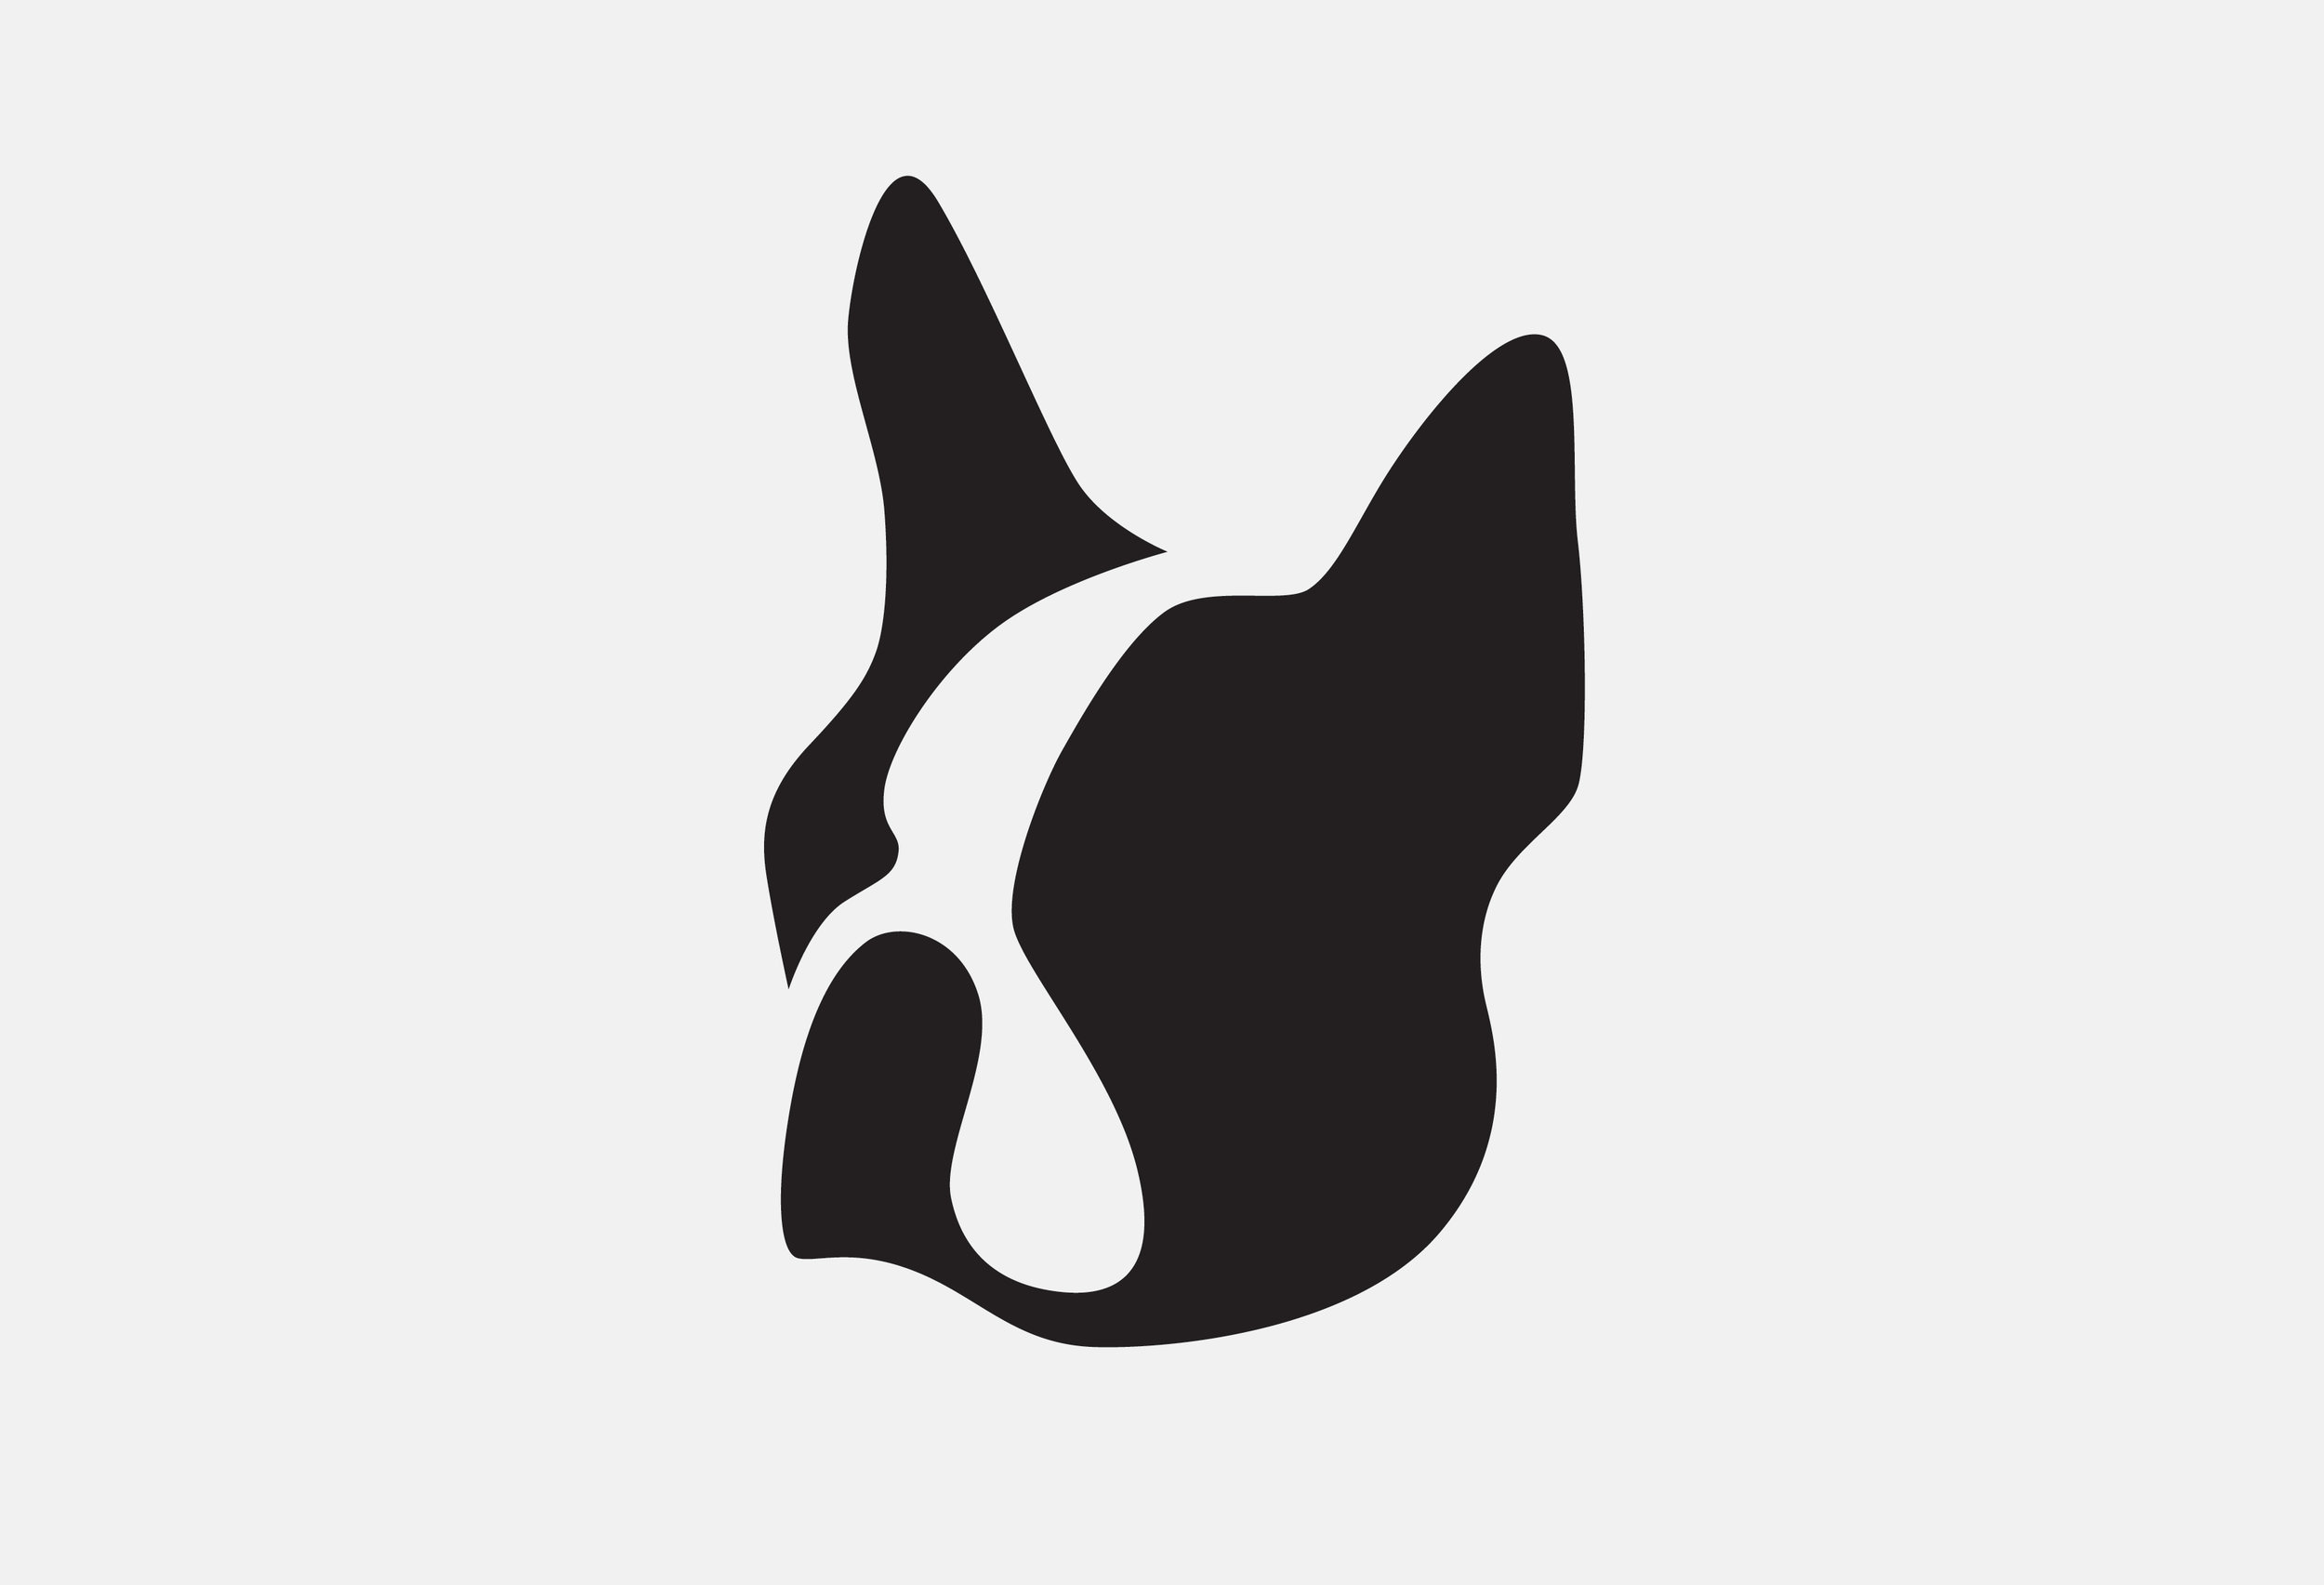 Mascot Images of Project dog9.jpg